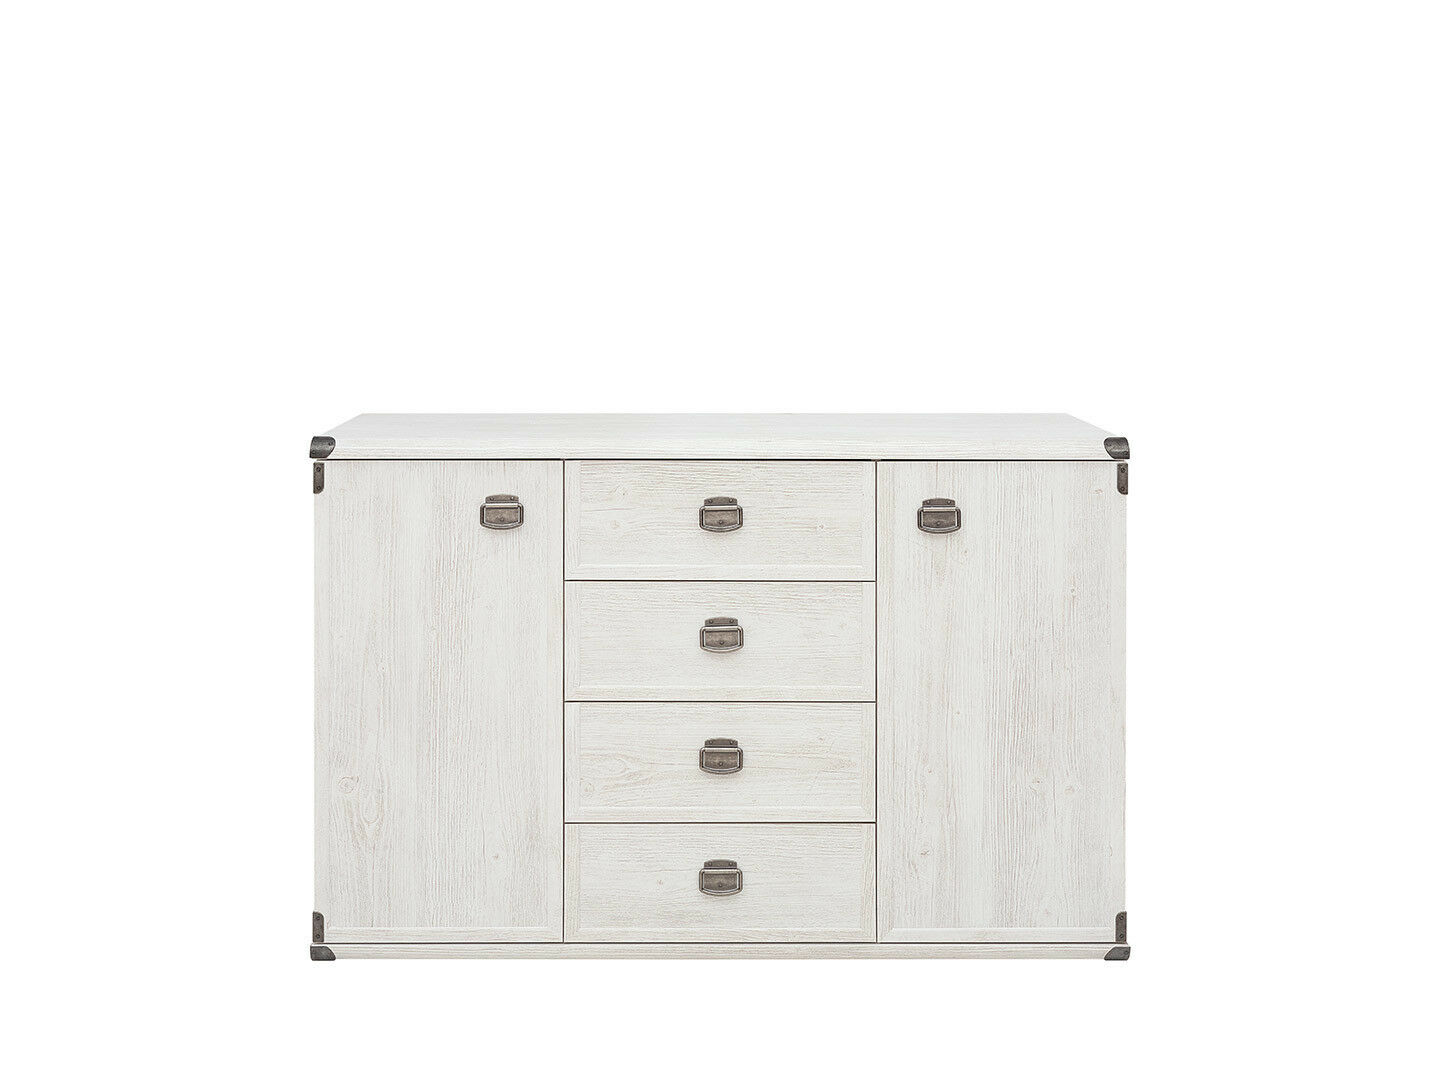 Details About Indiana White Wood Effect Sideboard Dresser Cabinet Drawers Rustic Nautical